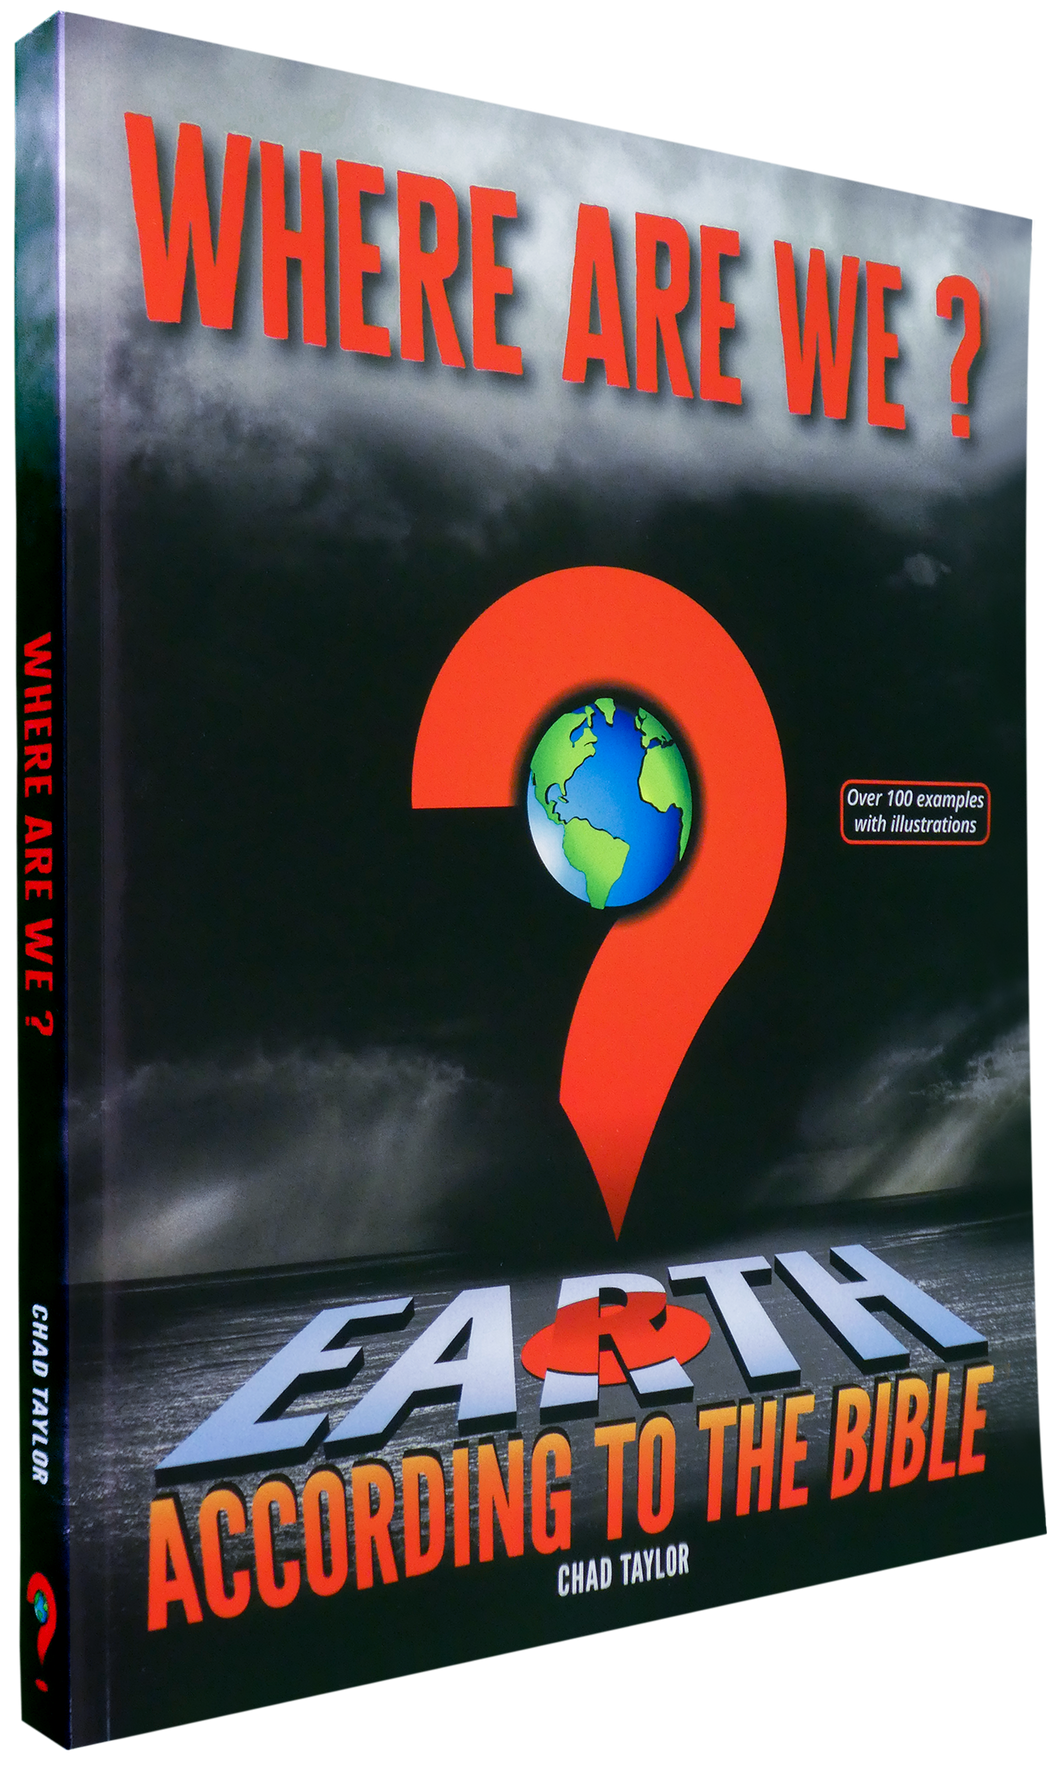 WHERE ARE WE? Earth according to the Bible, in 8.5